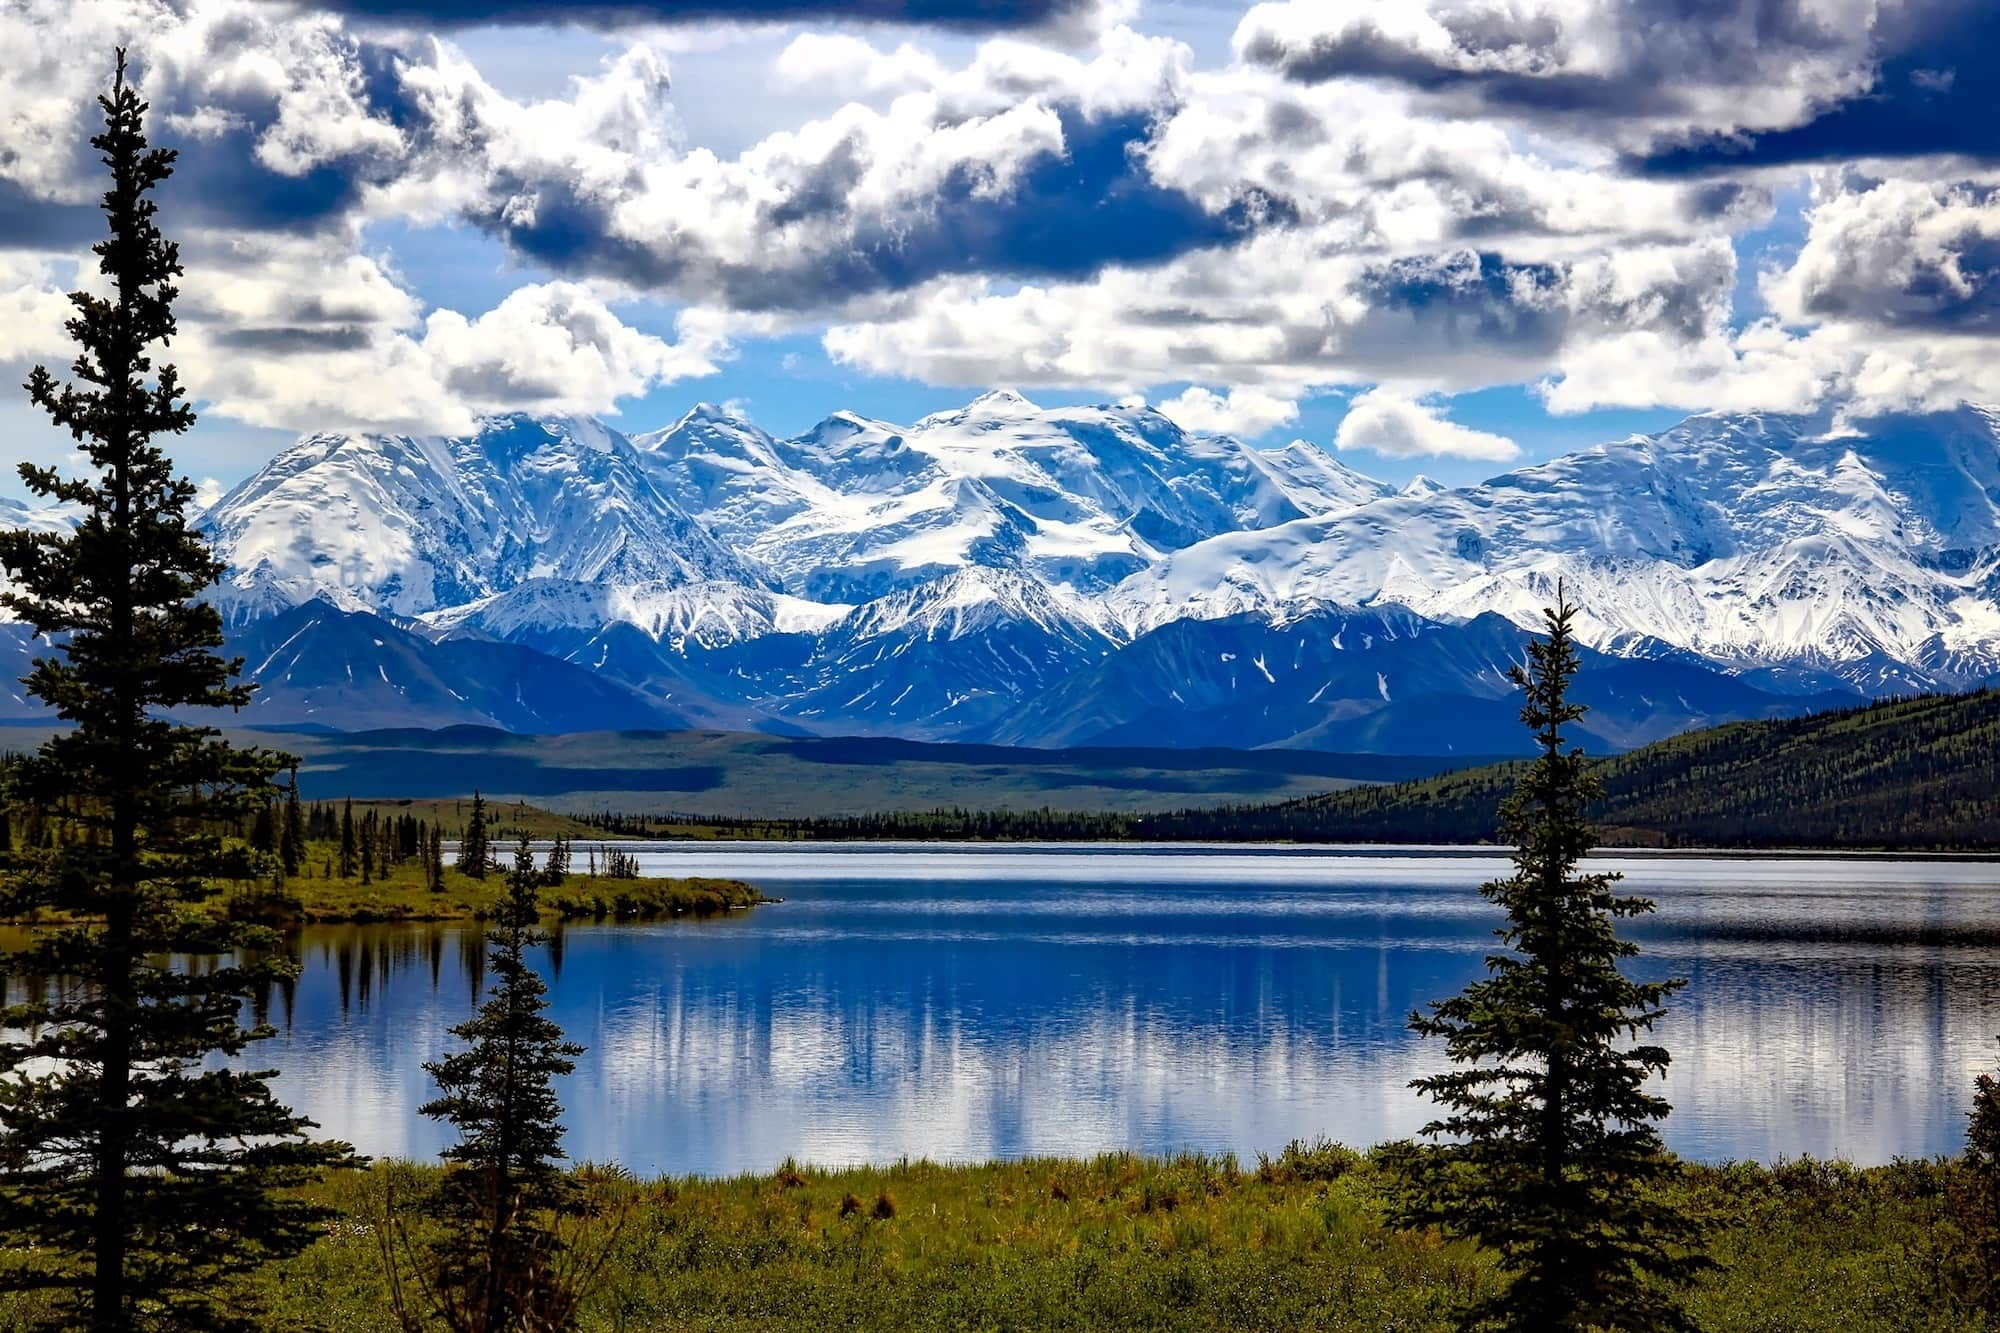 Visit Kenai Fjords & Denali National Park as well as the towns of Seward, Homer, & Anchorage in 8 days on our 1,535-mile Alaska road trip itinerary.